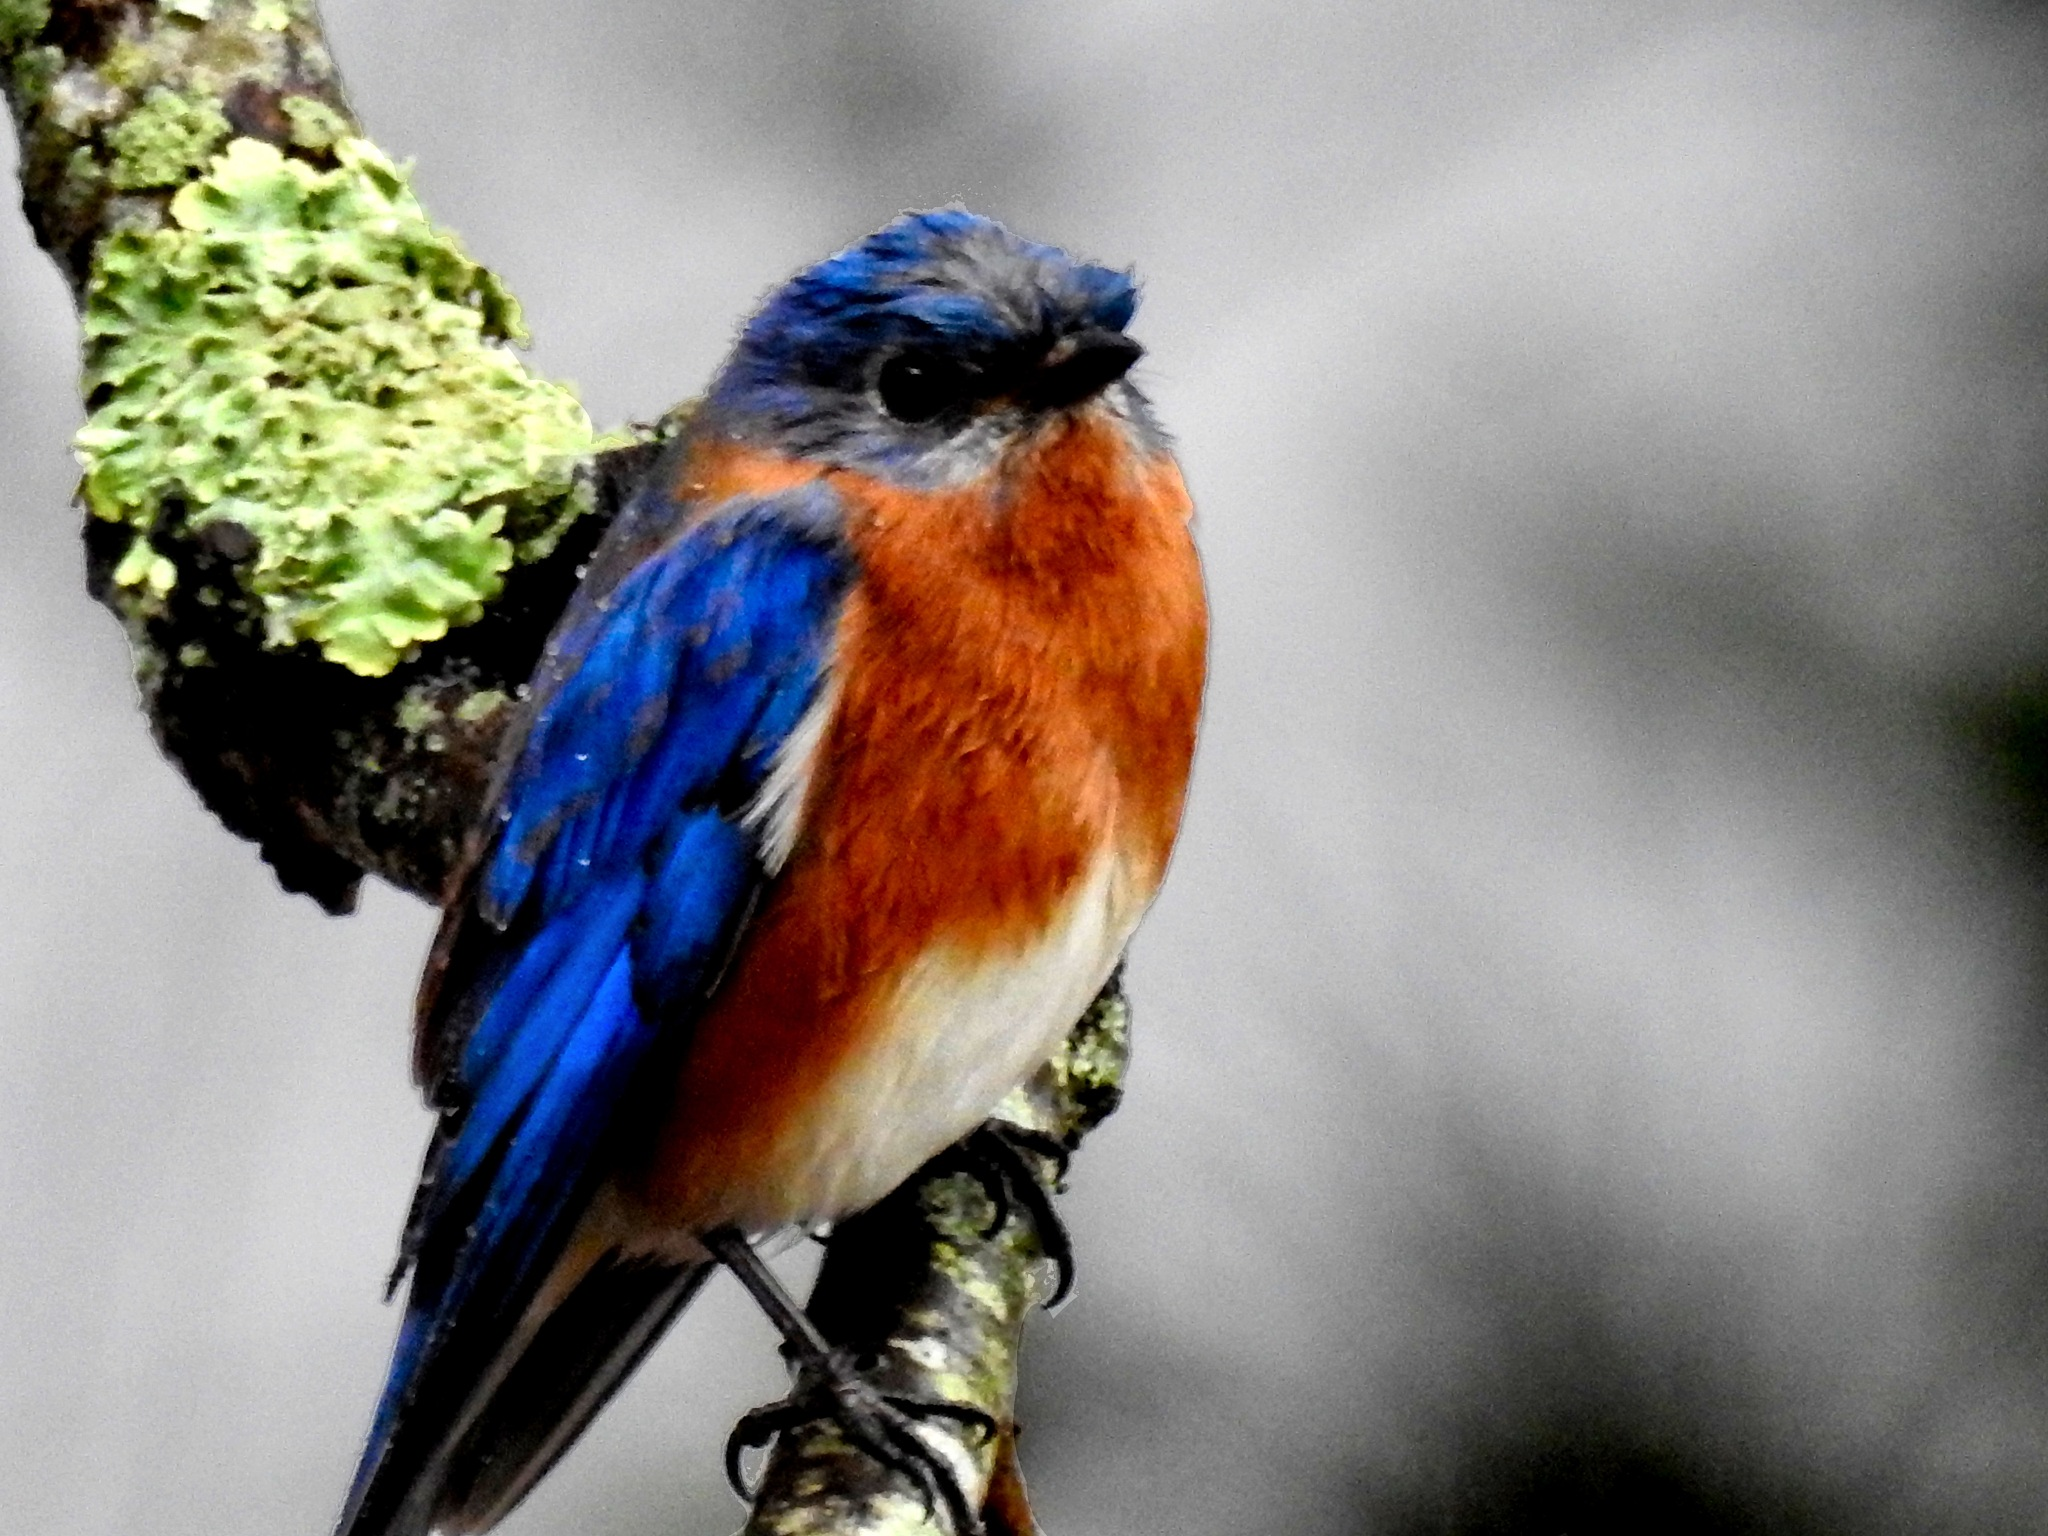 Rainy Day Bluebird by Patty Stockton